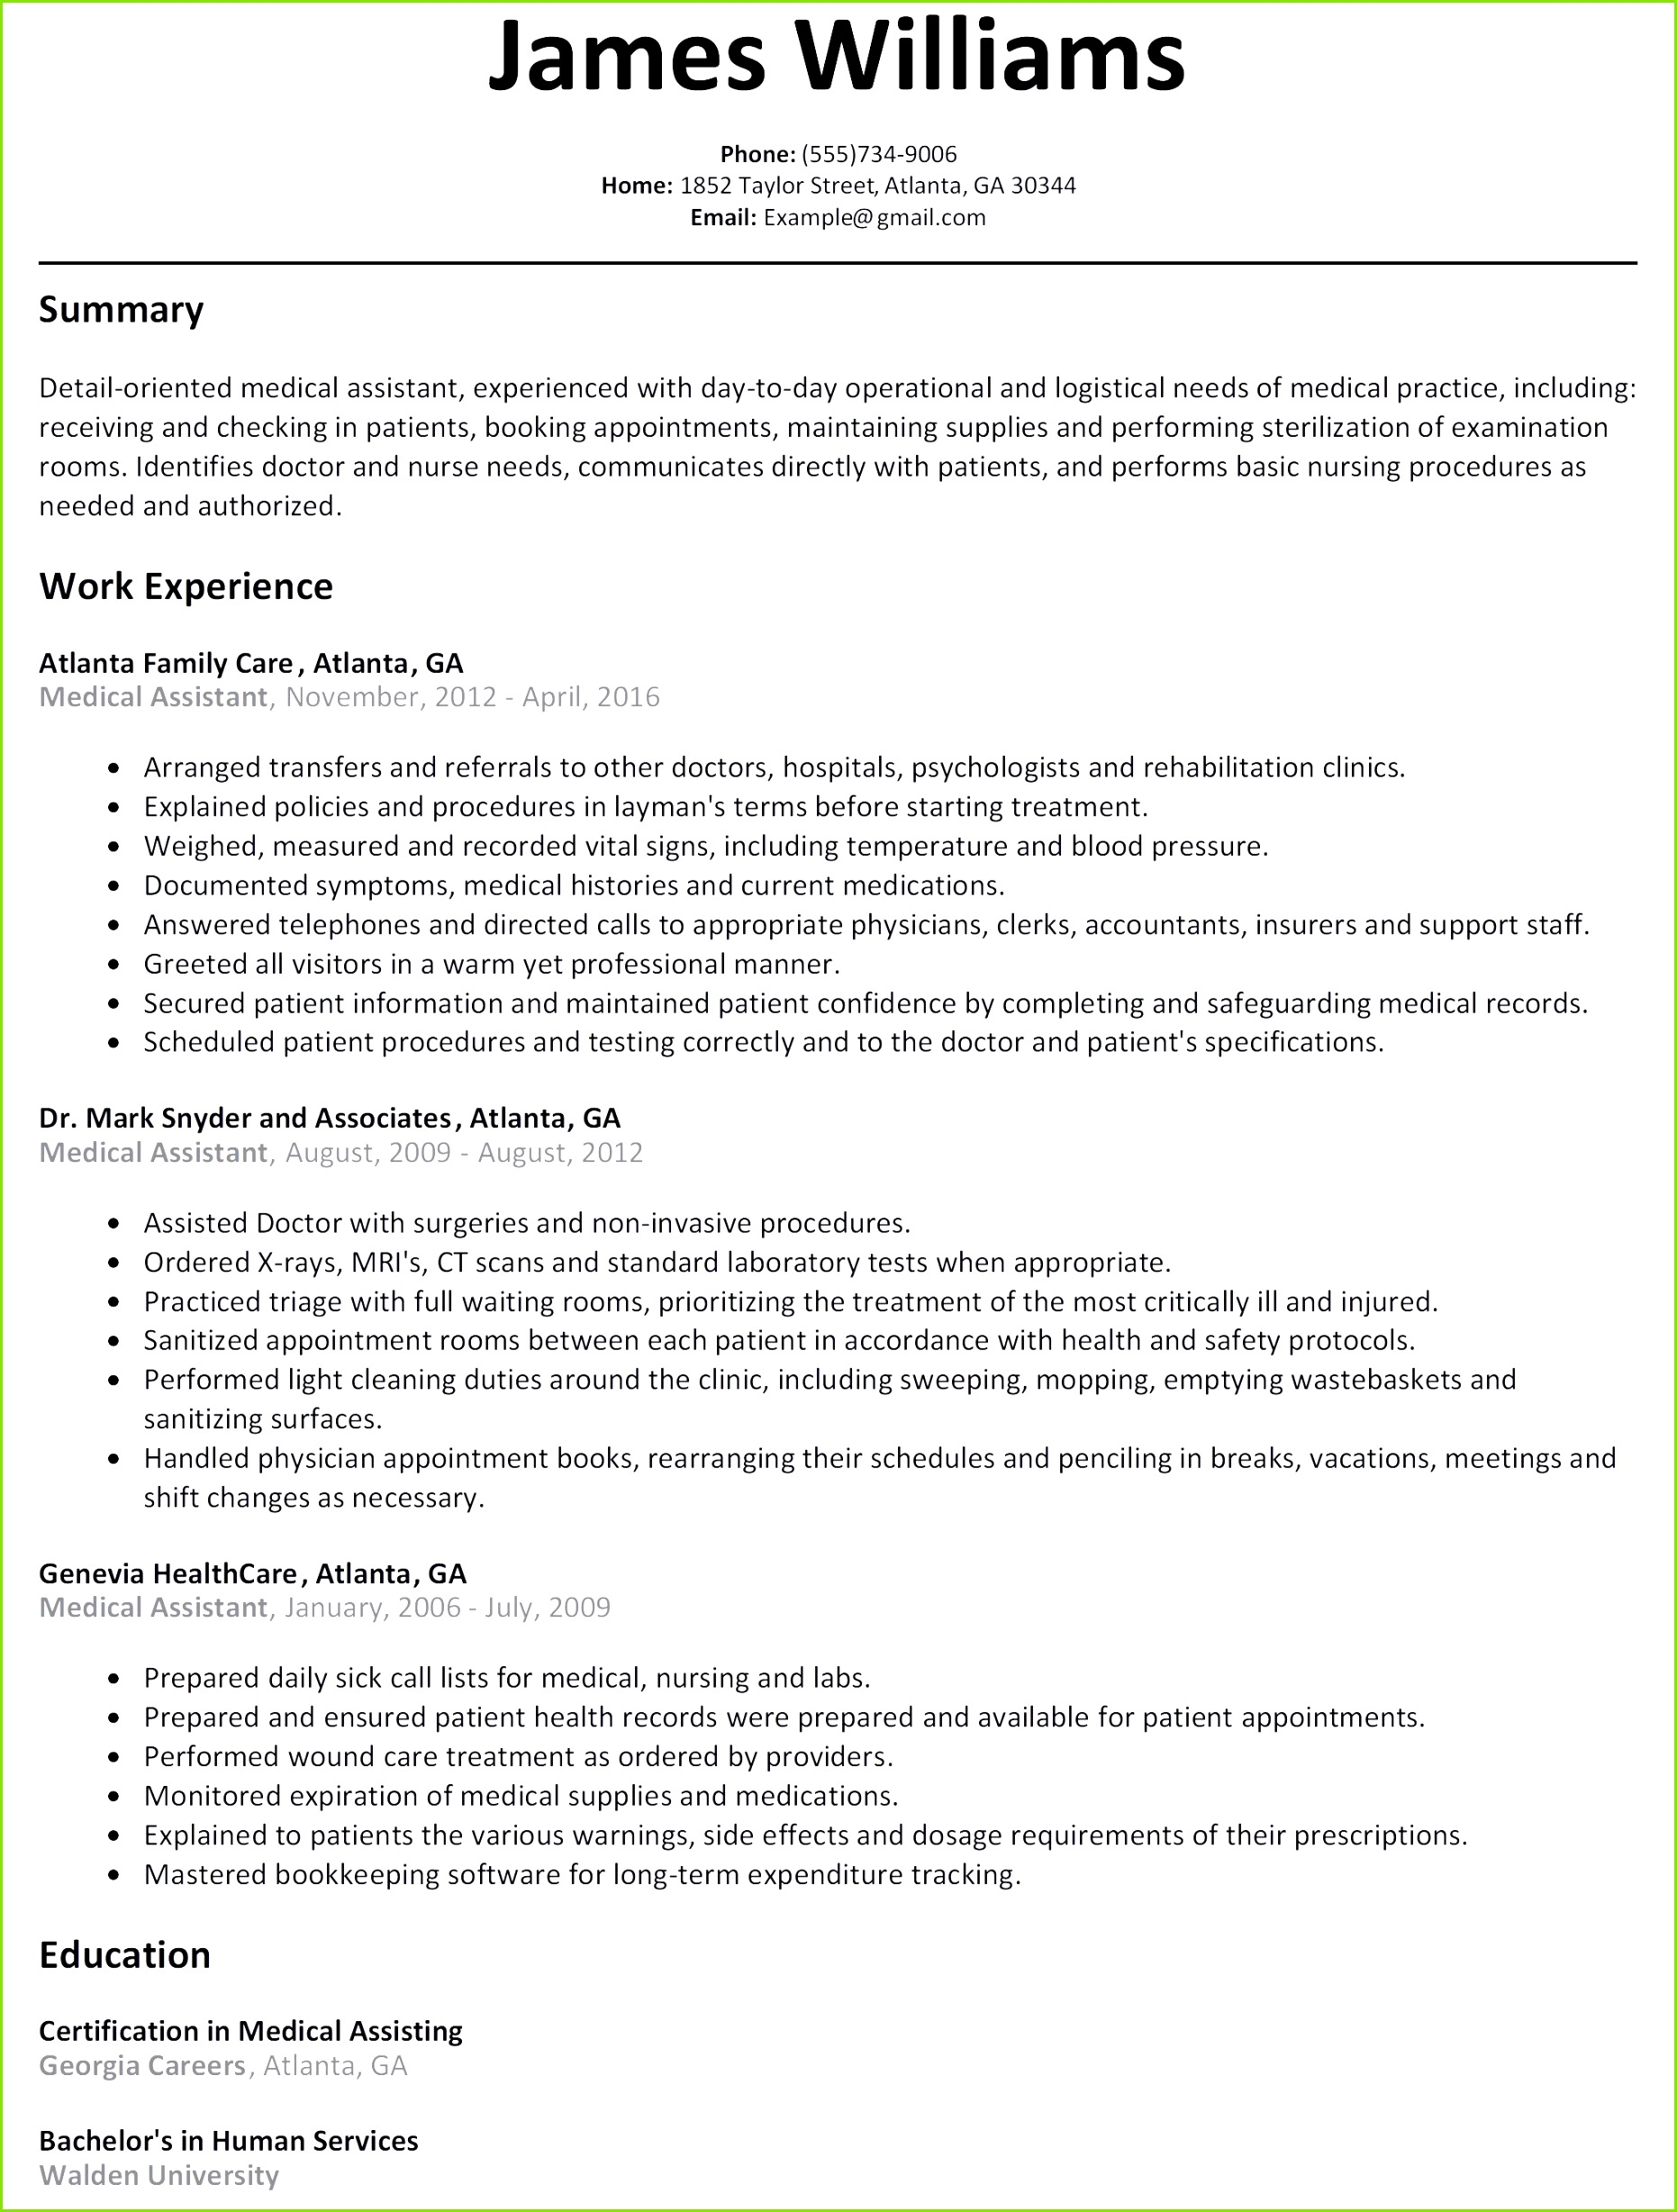 sample resume word format now free resume s in word format best od specialist sample